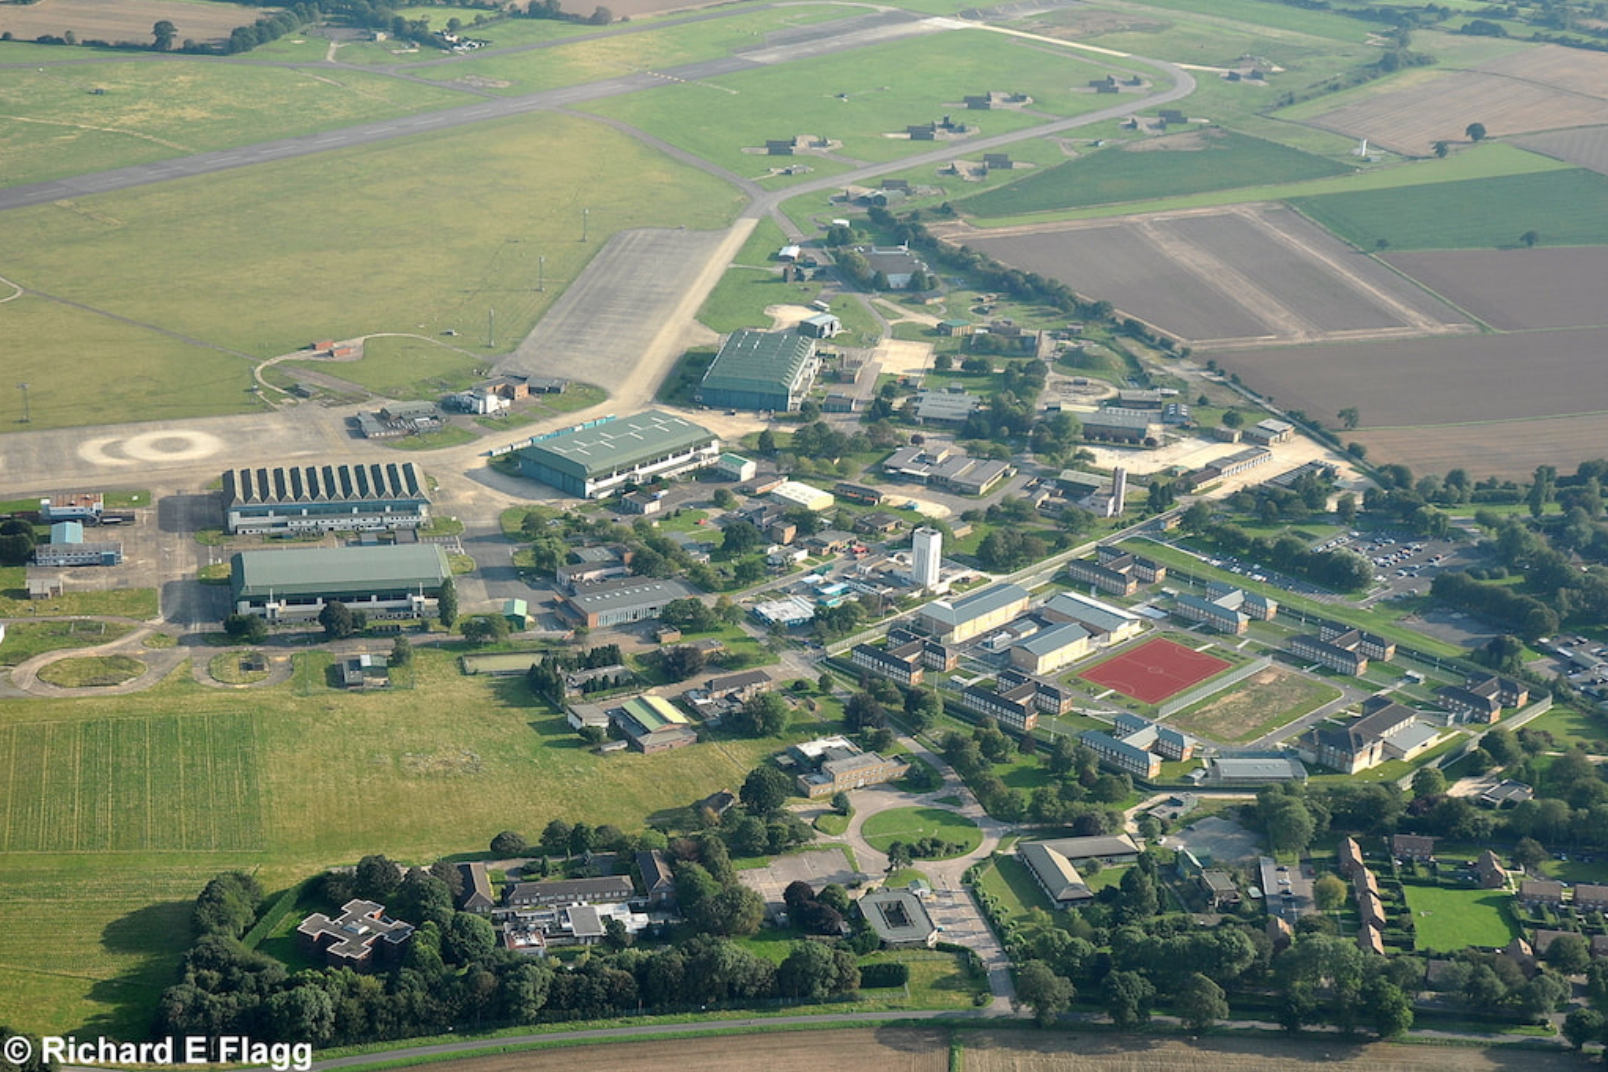 015Aerial View of RAF Coltishall 2 - 1 September 2010.png